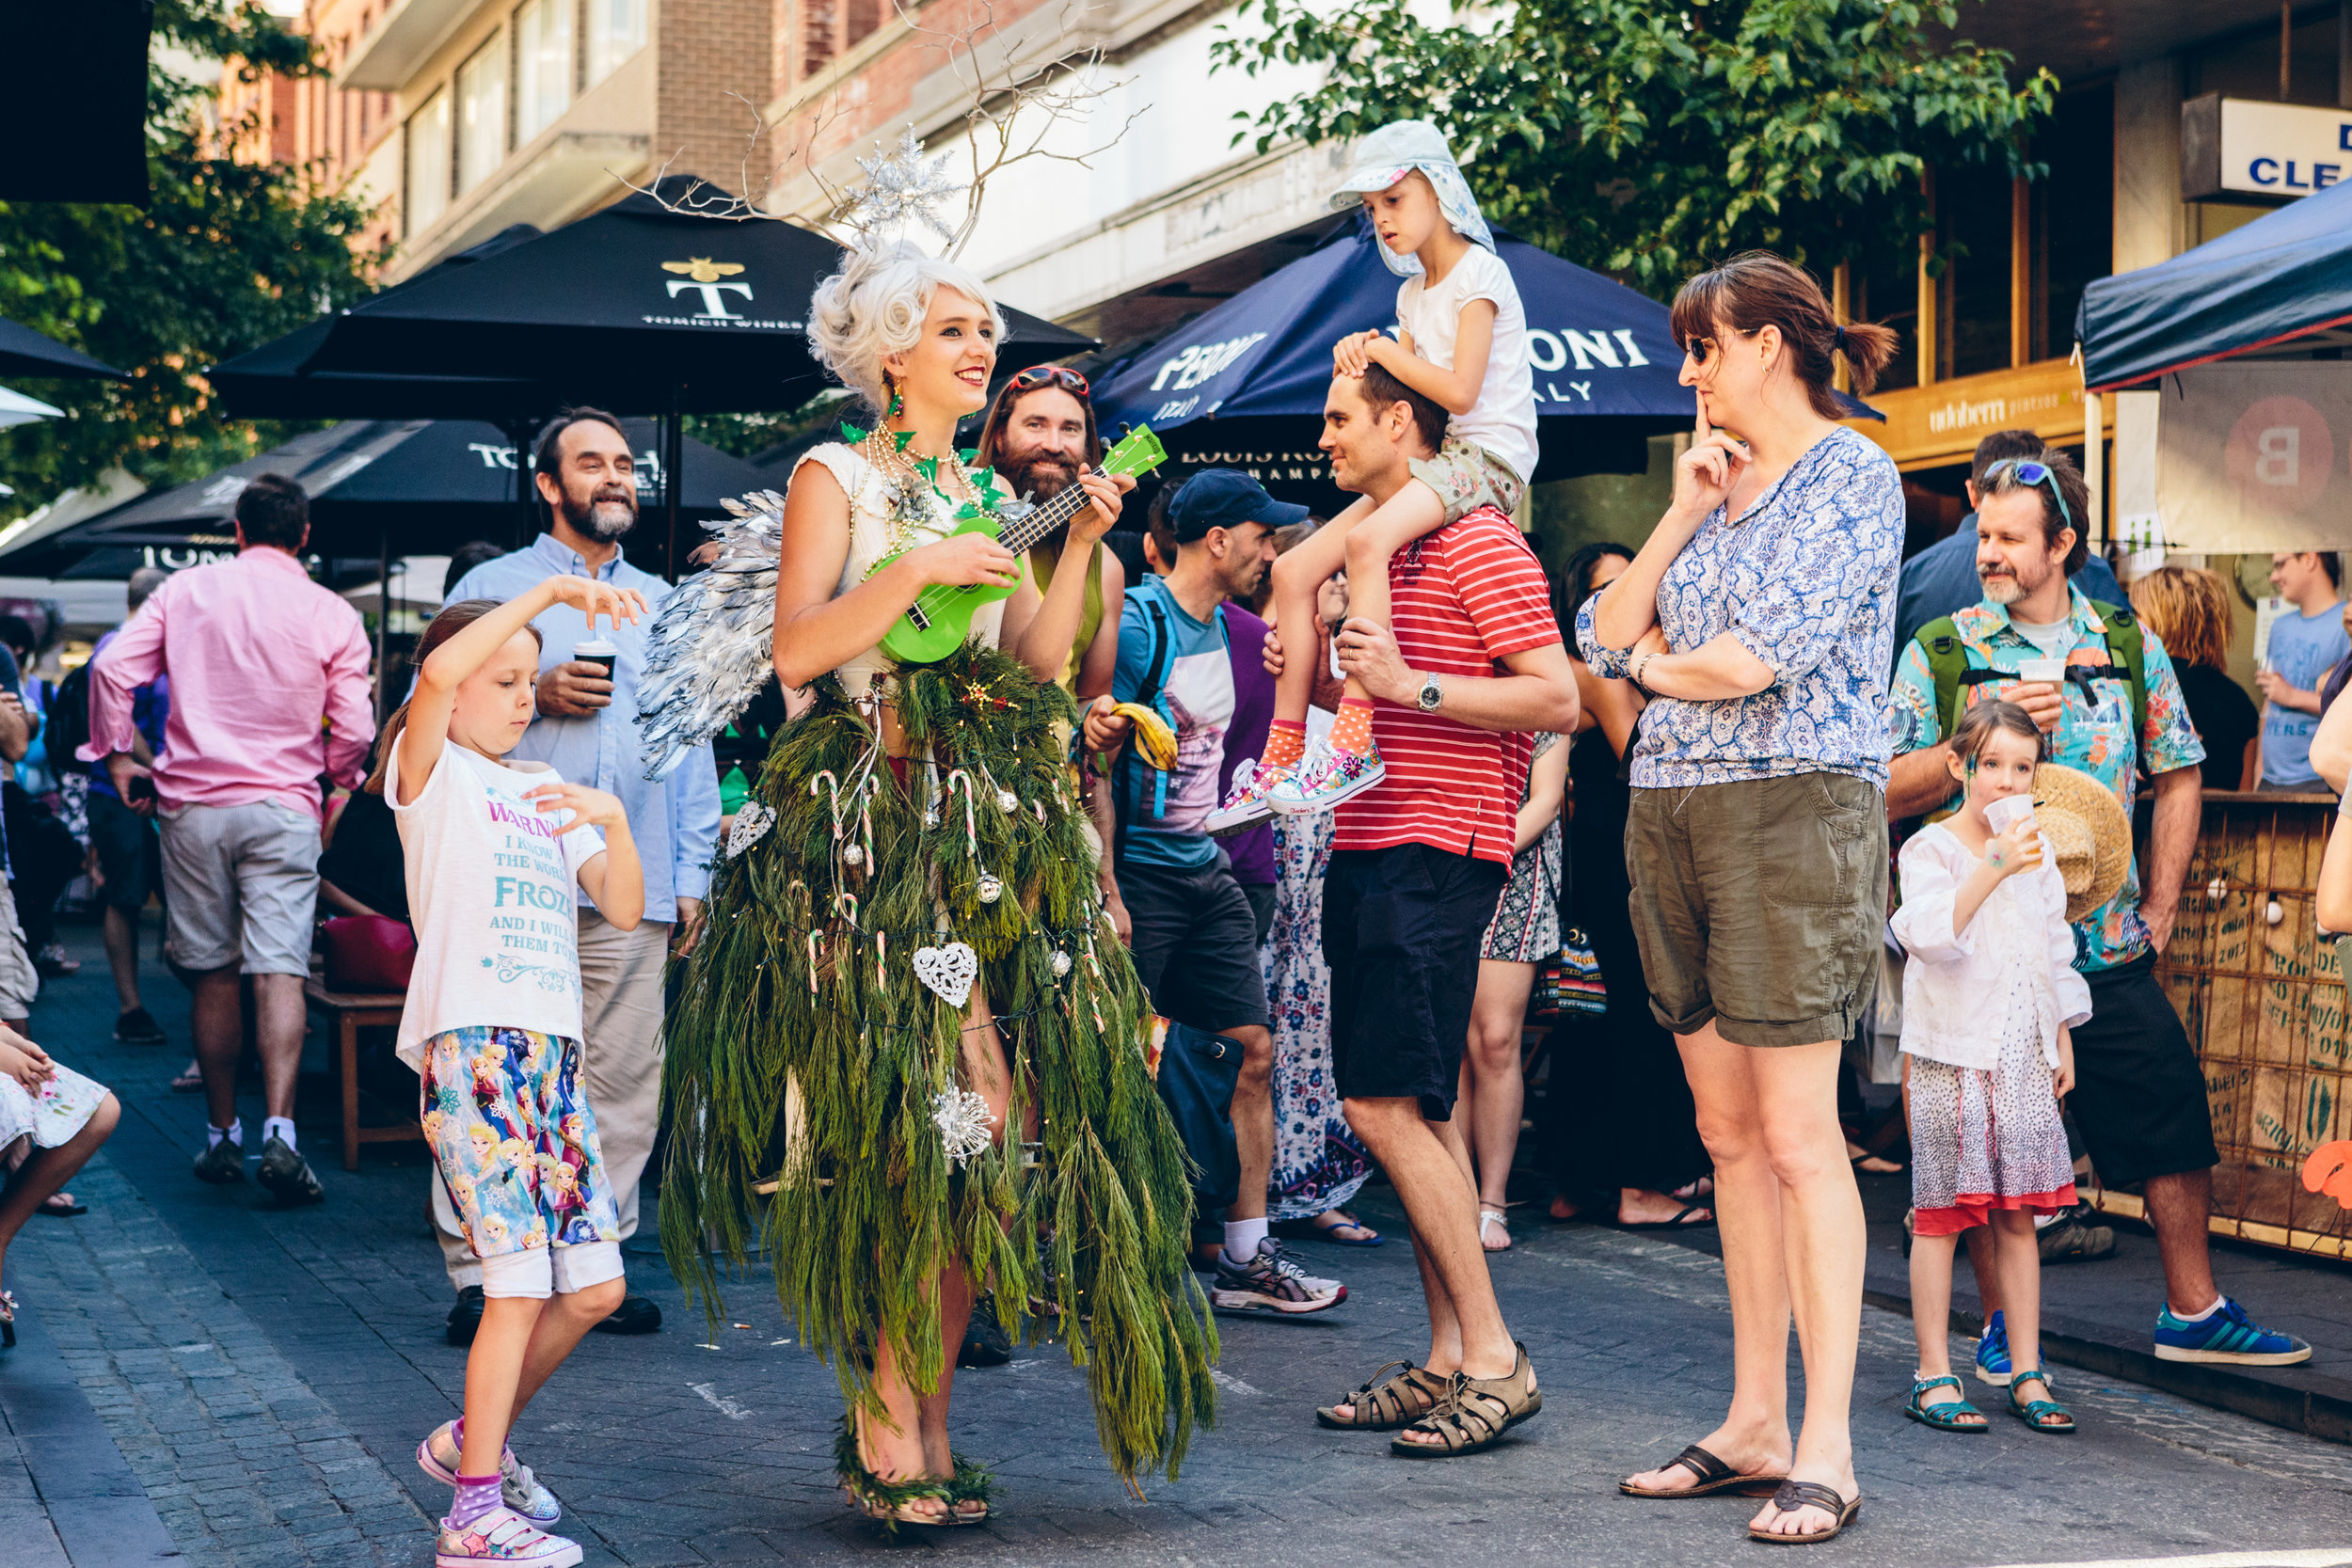 """""""Twiggy"""" the Singing Tree is at once festive and ethereal. With branches of real flora interwoven into her dress, adorned with fairy lights and candy canes, she moves slowly and gracefully.  She can be dressed for Christmas with bells on her heels and glitter in her wings, or redressed for an Australiana look, as a wattle!  She is seven-foot-tall with a striking visual presence great for any event, stationary or mobile. Her angelic voice and ukulele will charm and delight passers by who may pose for a photo, make a wish, or glean some wisdom of the forests and the stars.  She can be a glamorous host, a friendly statuesque installation, or provide light lilting tunes and cheer.  The magic of a real-life walking and singing tree is a delight indeed, and of course, battery operated Christmas tree lights so she glows in the evenings!"""